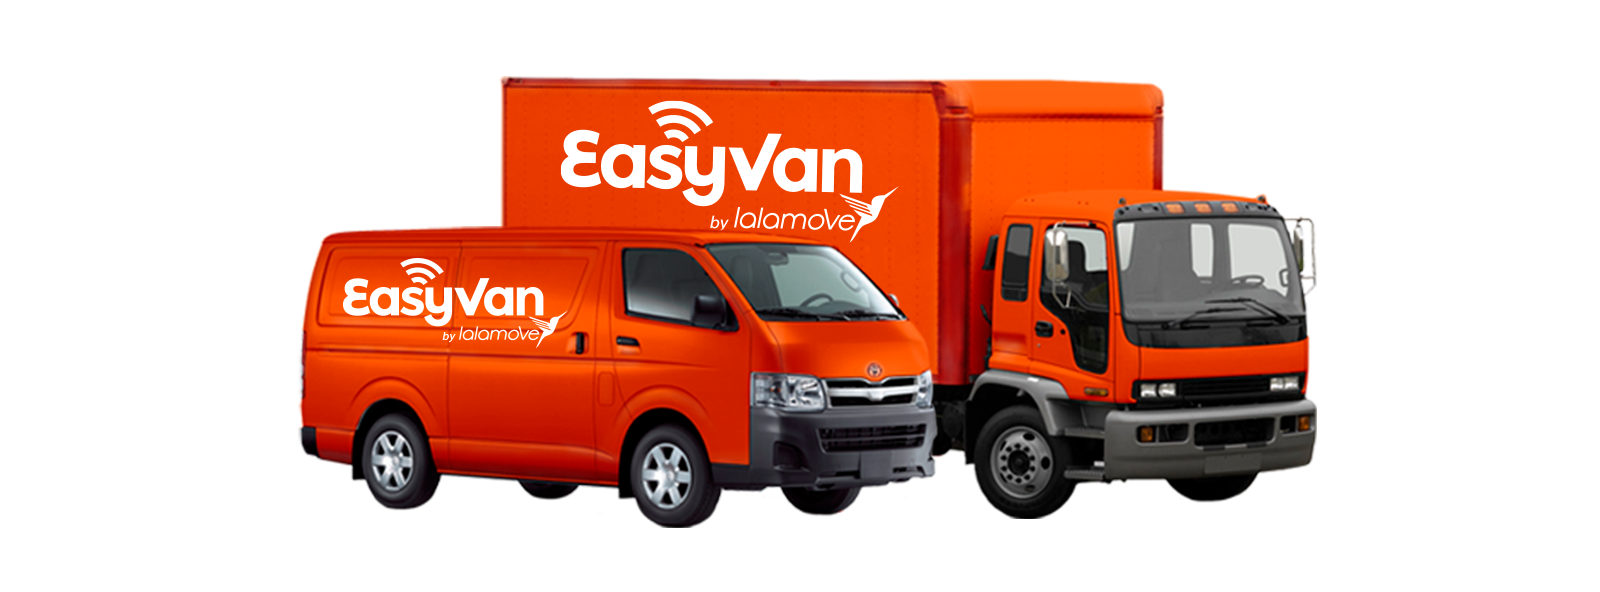 EasyVan Professional On-demand Delivery Fleet Van and Truck